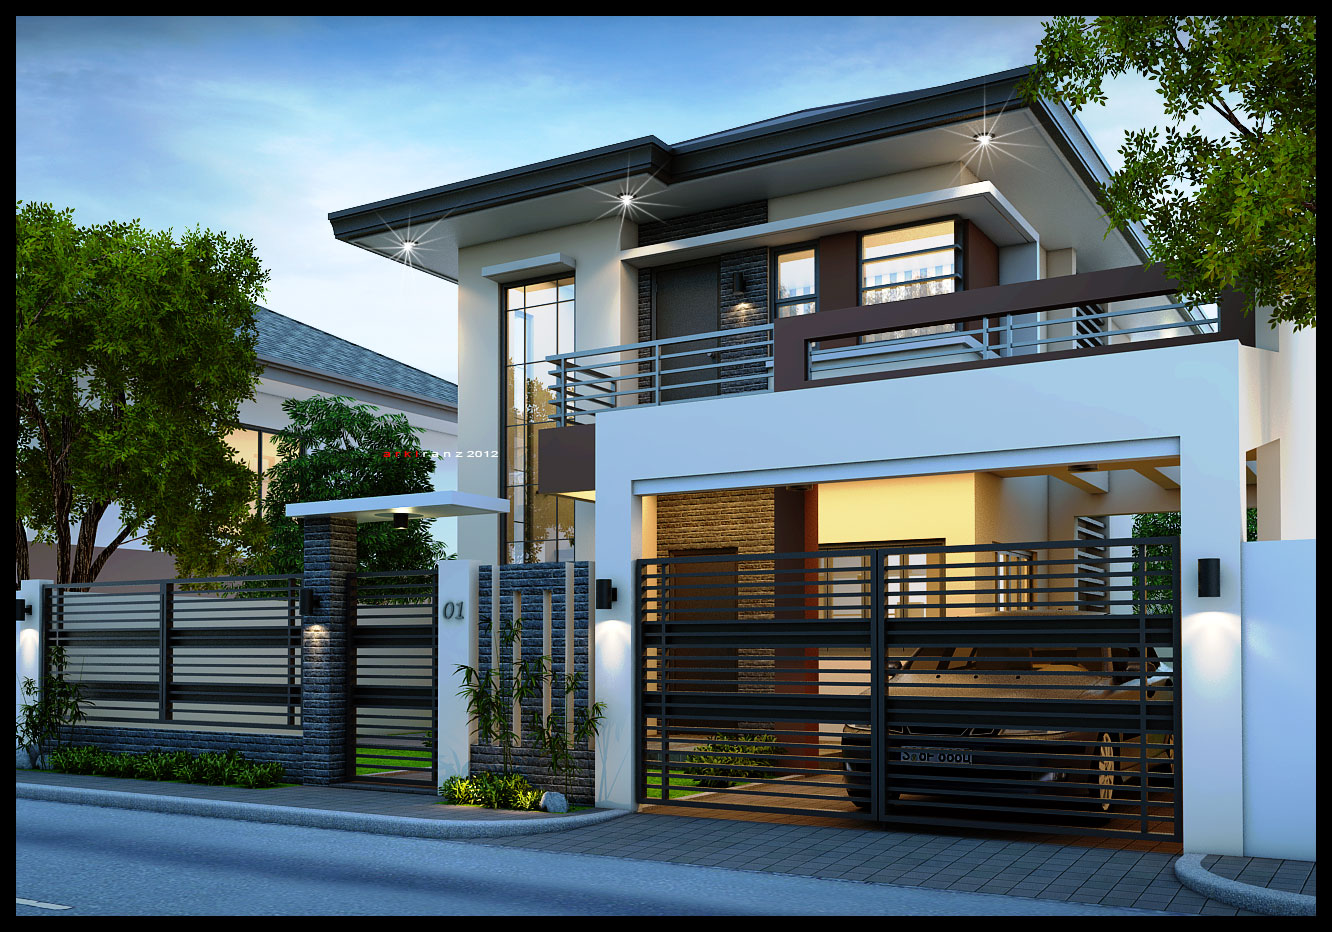 2 Storey Modern Small Houses With Gate Of Philippines: modern 2 story homes